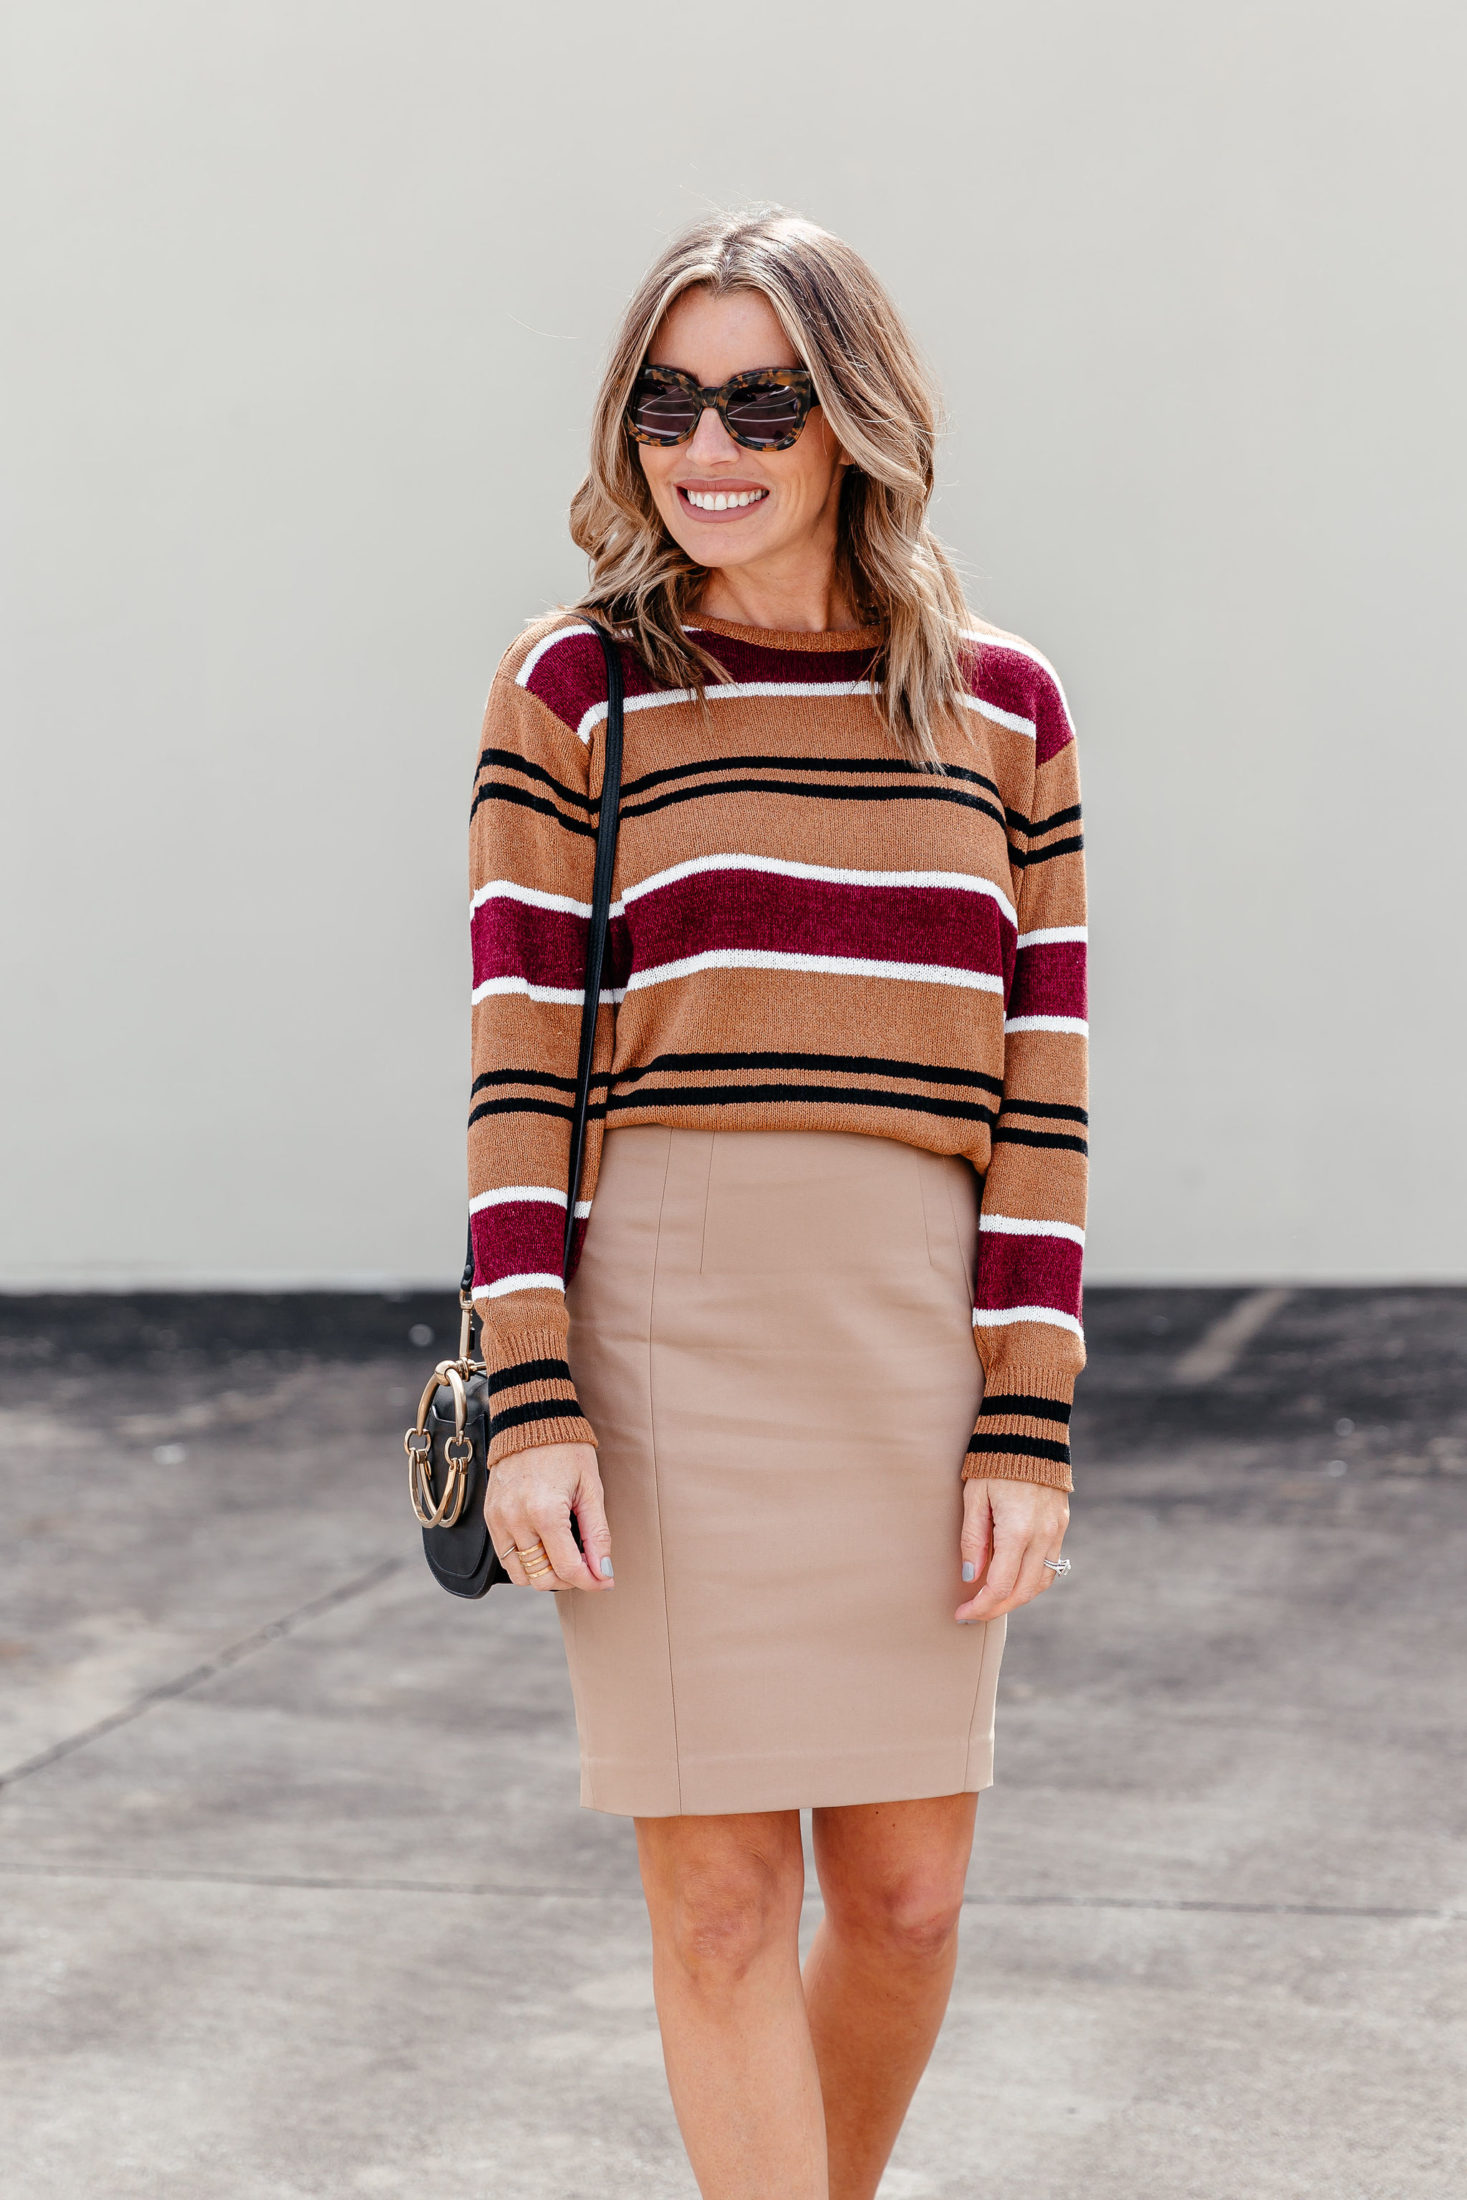 c5f36b57f4c Business Casual Outfits You Can Wear Outside of Work. Business casual  workwear outfit inspiration